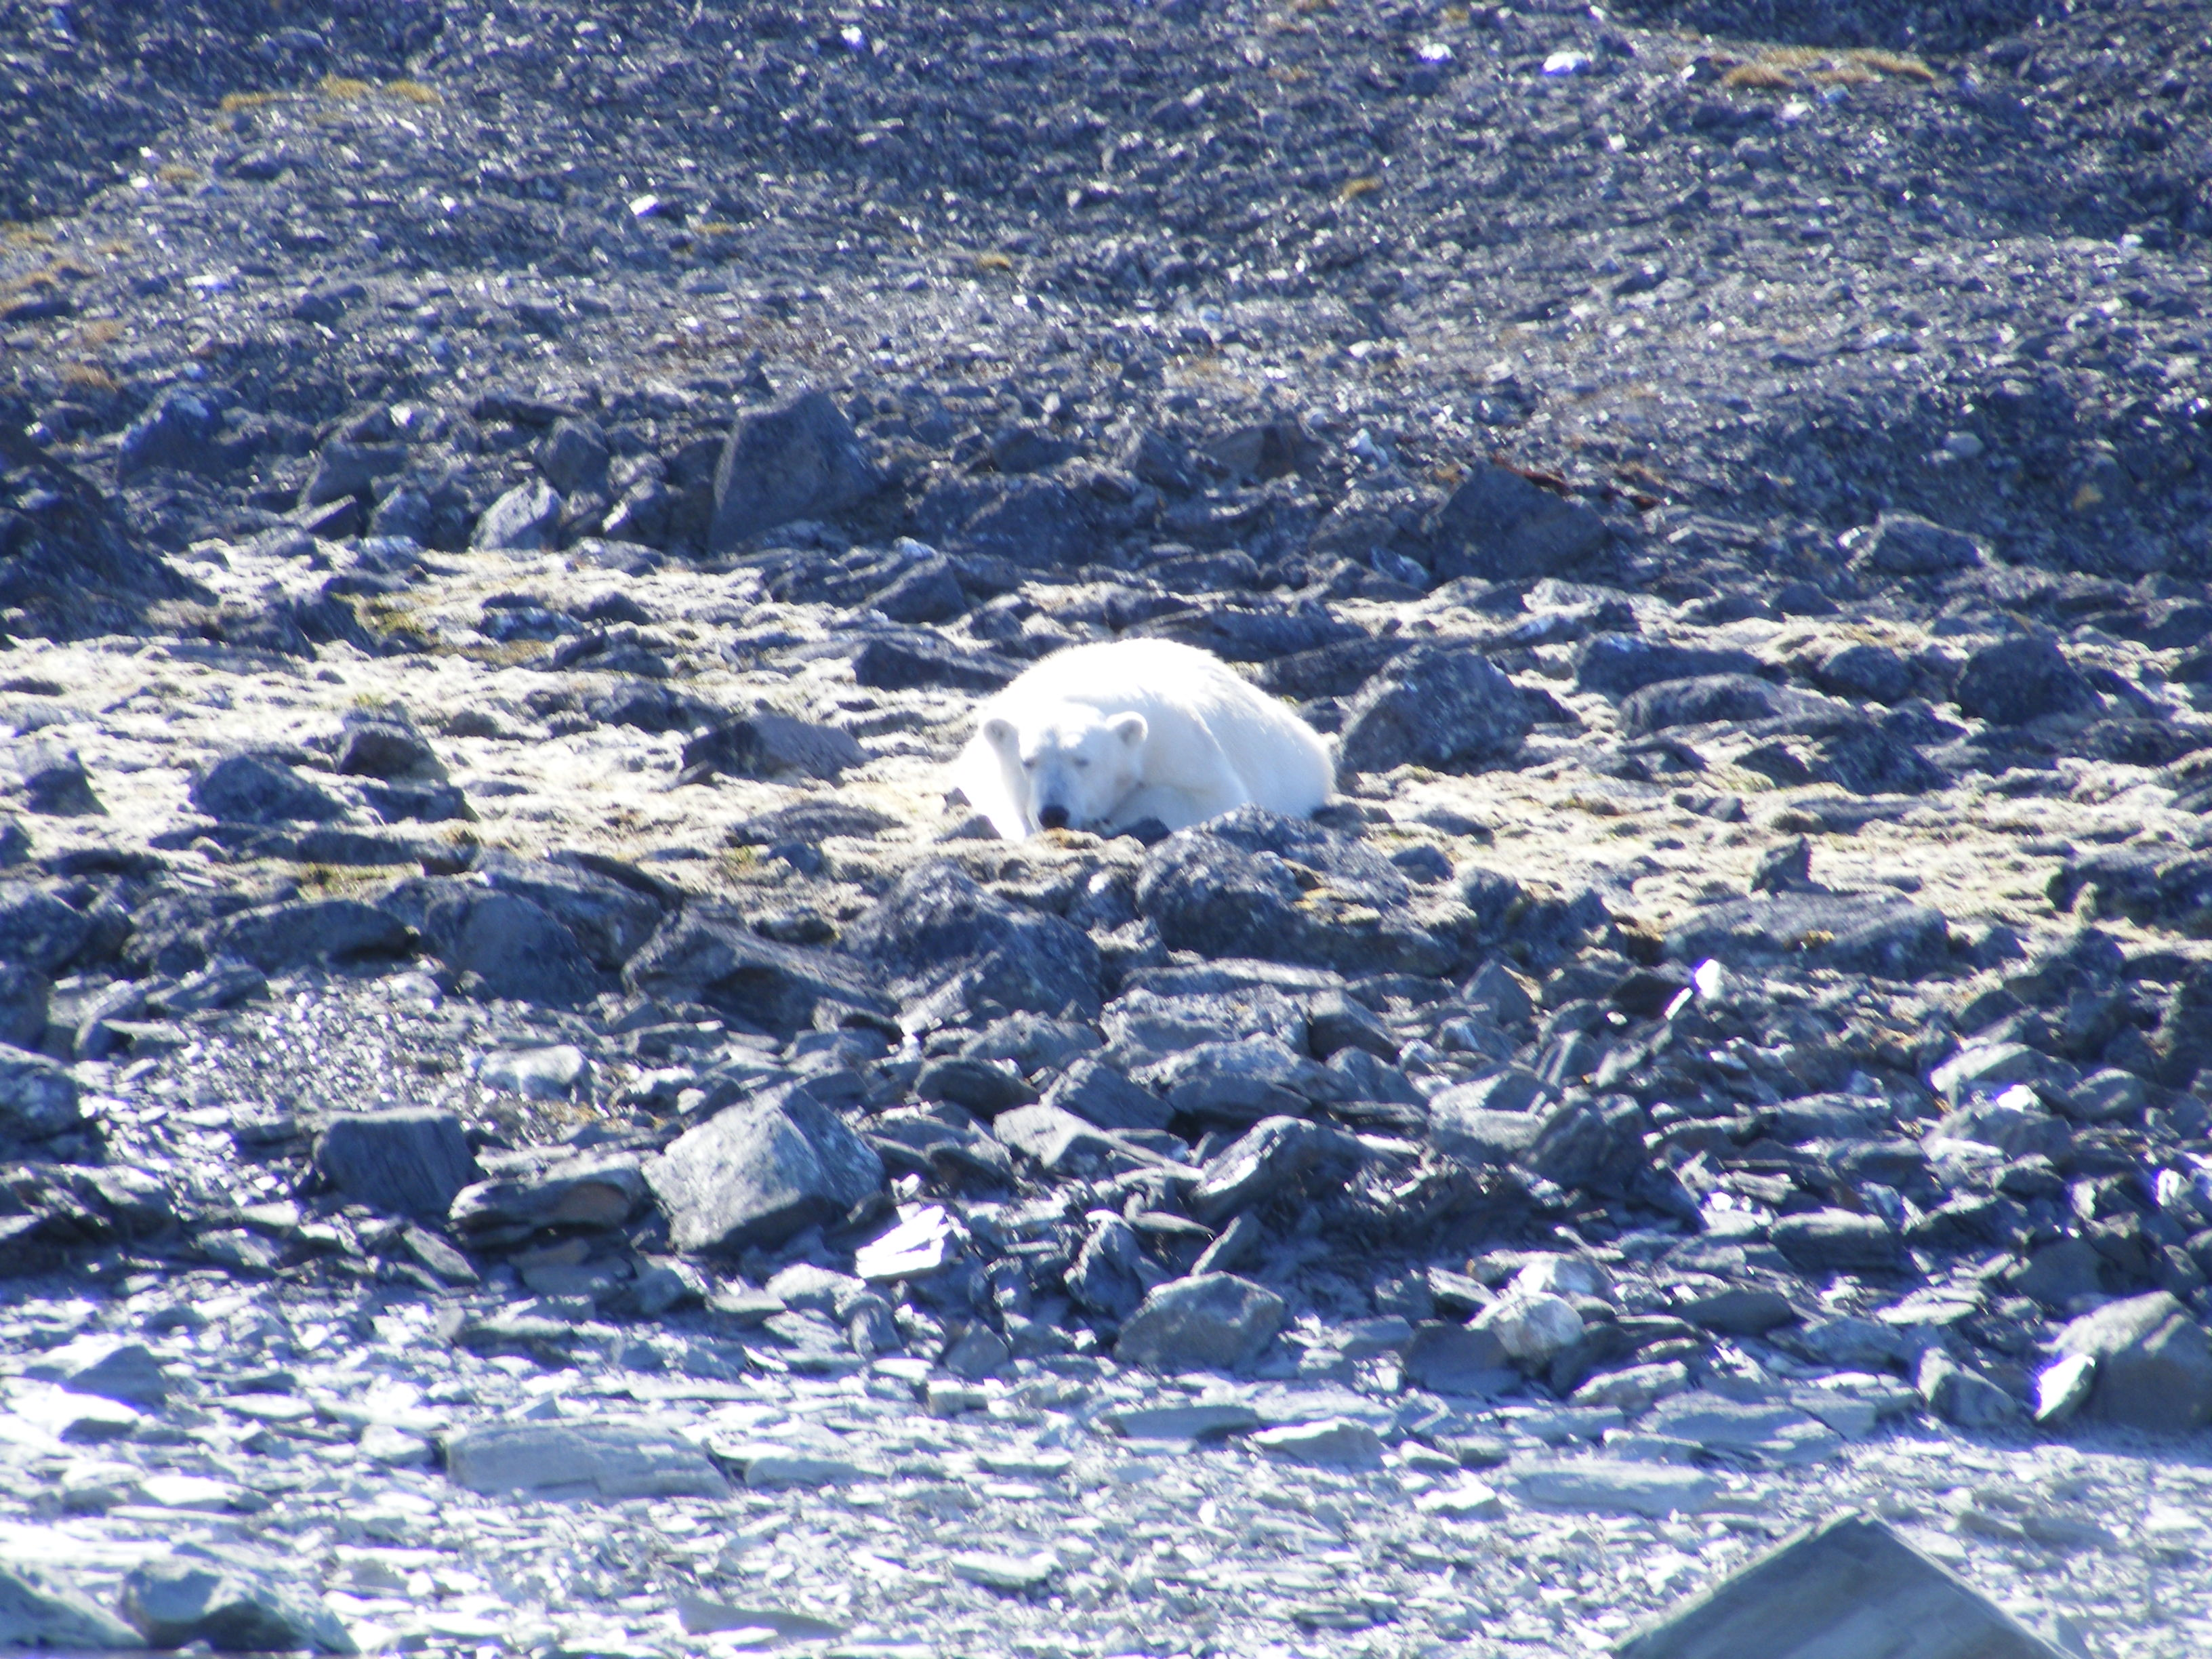 A polar bear lies on its front on a rocky shore